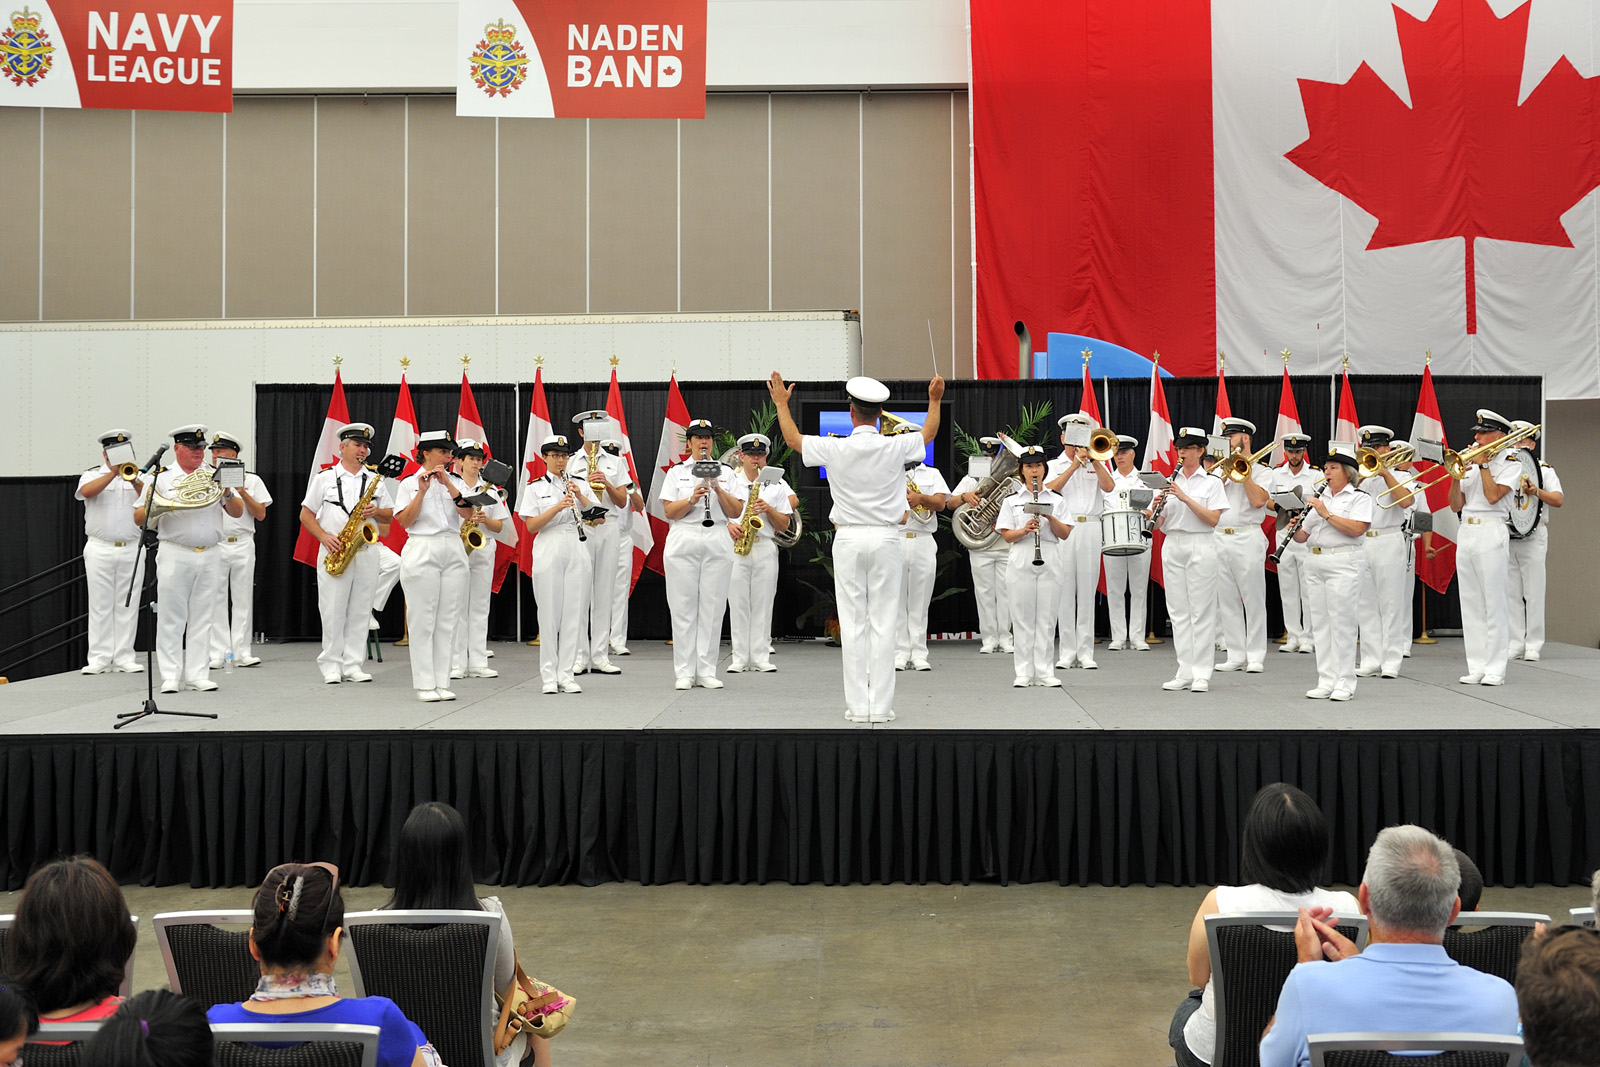 The Naden Band will be part of Canada 150 celebrations at Canada Place in Vancouver on July 1.